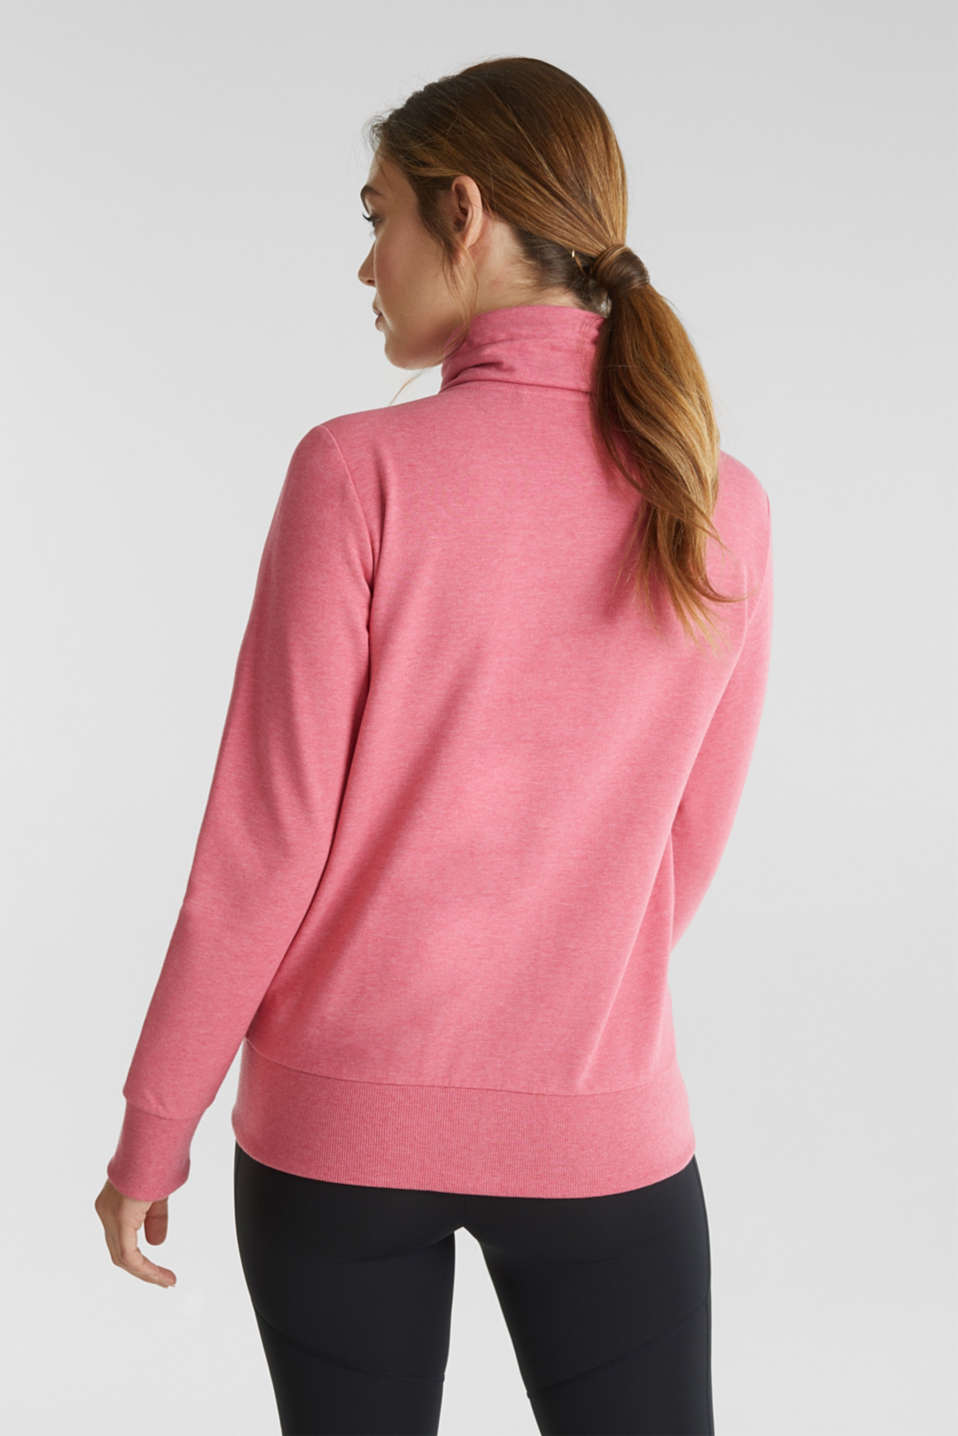 Sweatshirt cardigan with a drawstring collar, CORAL 2, detail image number 3